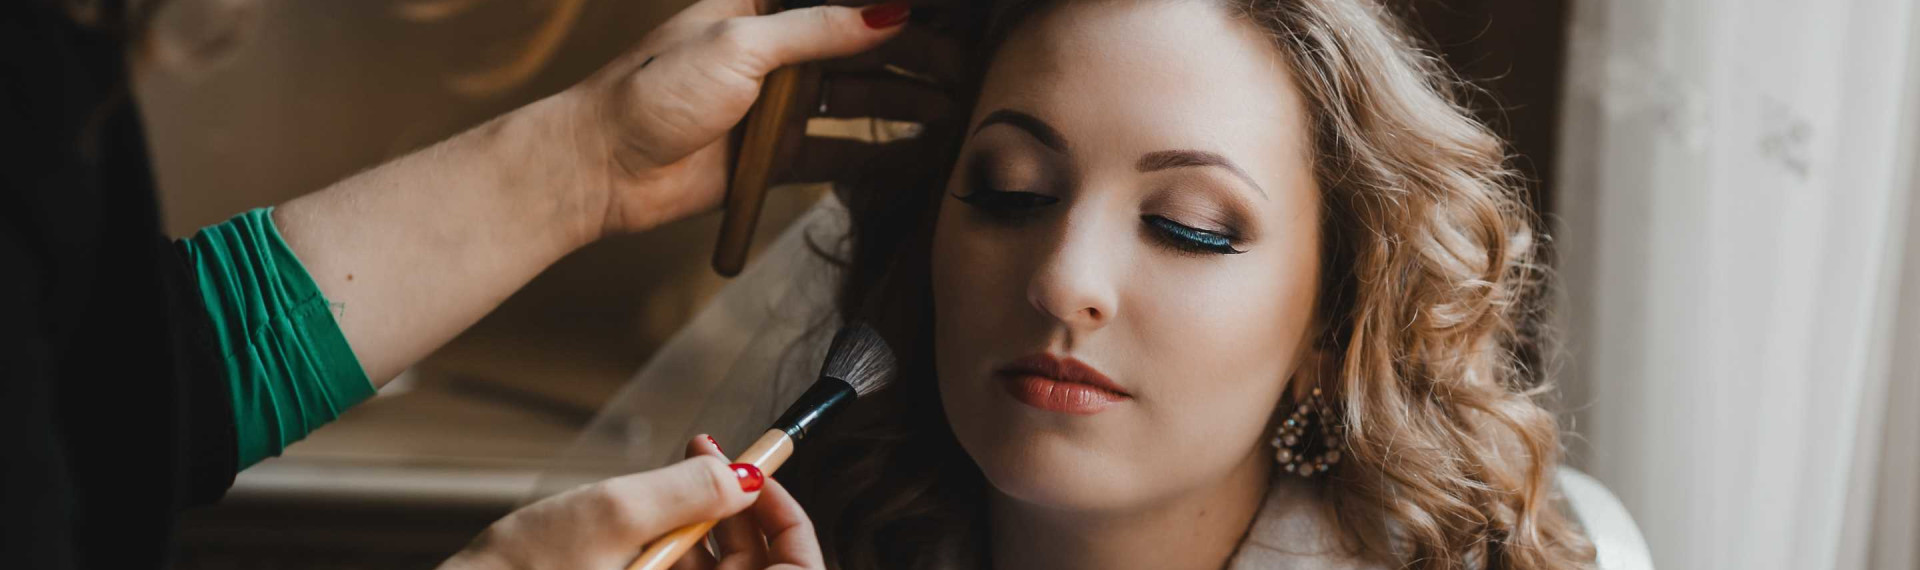 Professionelles Make-up & Hairstyling | JGA Prag Frauen